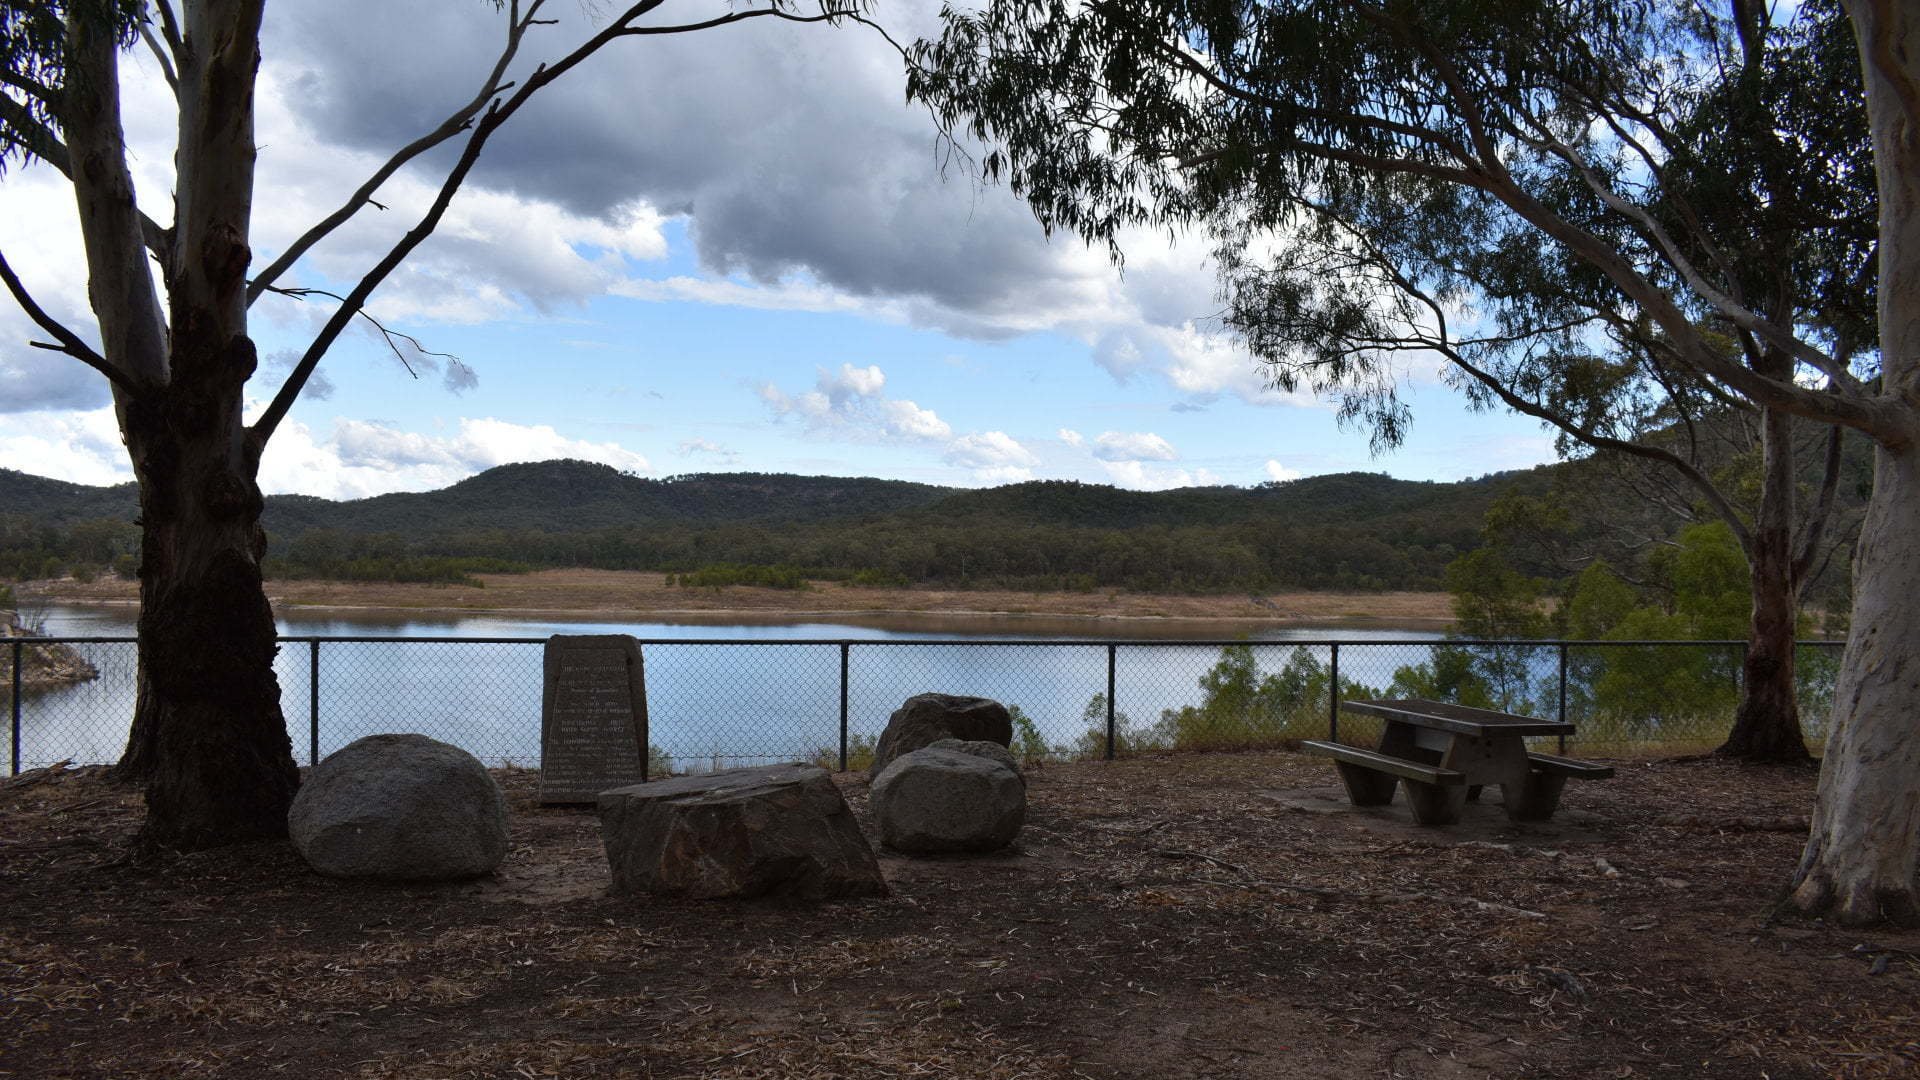 Monument with views of Lake Perseverance behind it, located at the western spillway park. Lake Perseverance is one of three dams that supply most of the water to Toowoomba. A park on either side of the spillway, and a separate park at the pump station with more facilities